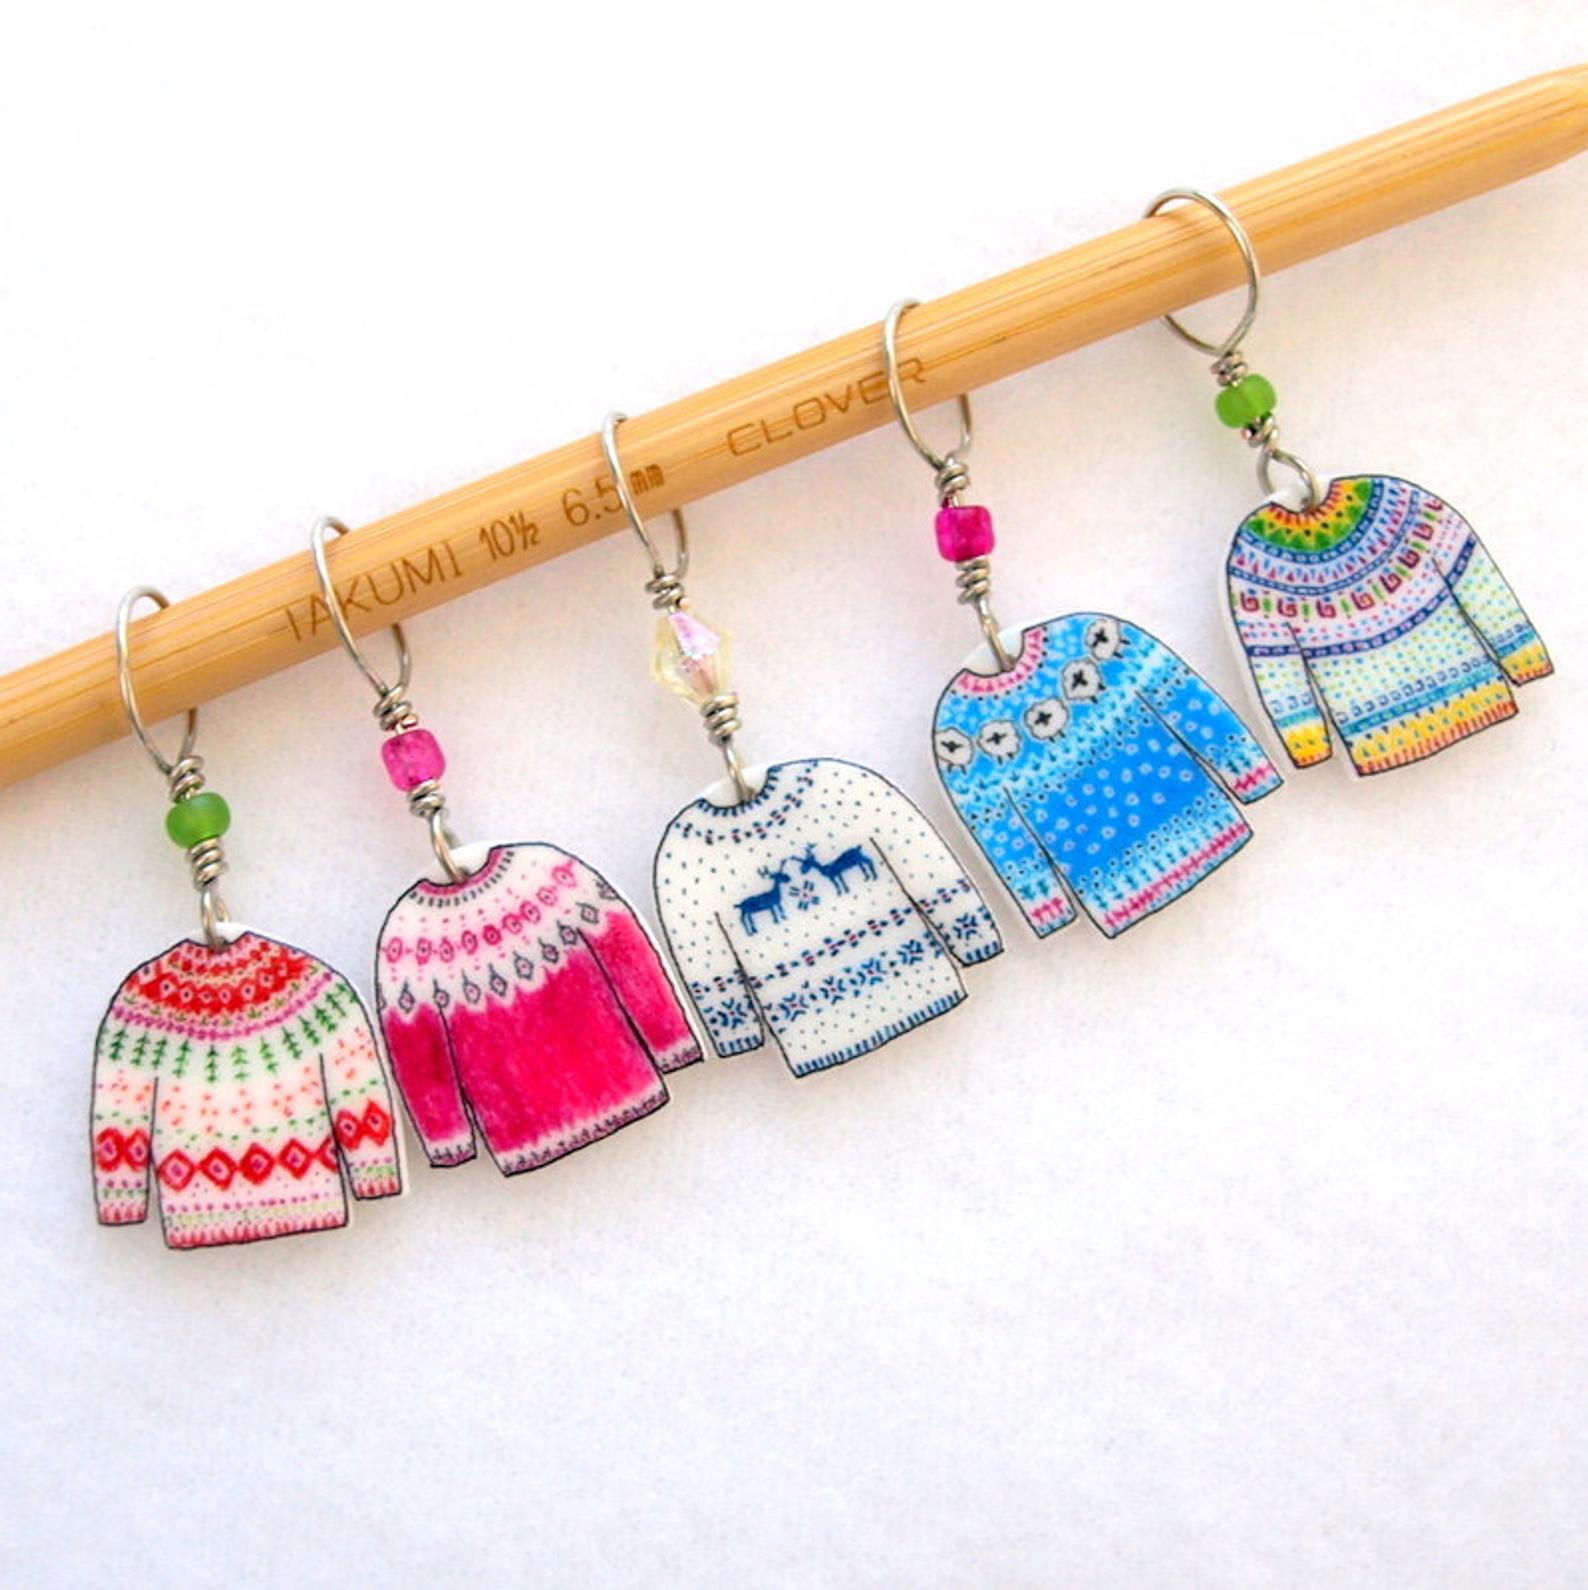 Cute Stitch Markers for Knitting: Tiny Fair Isle Sweaters!